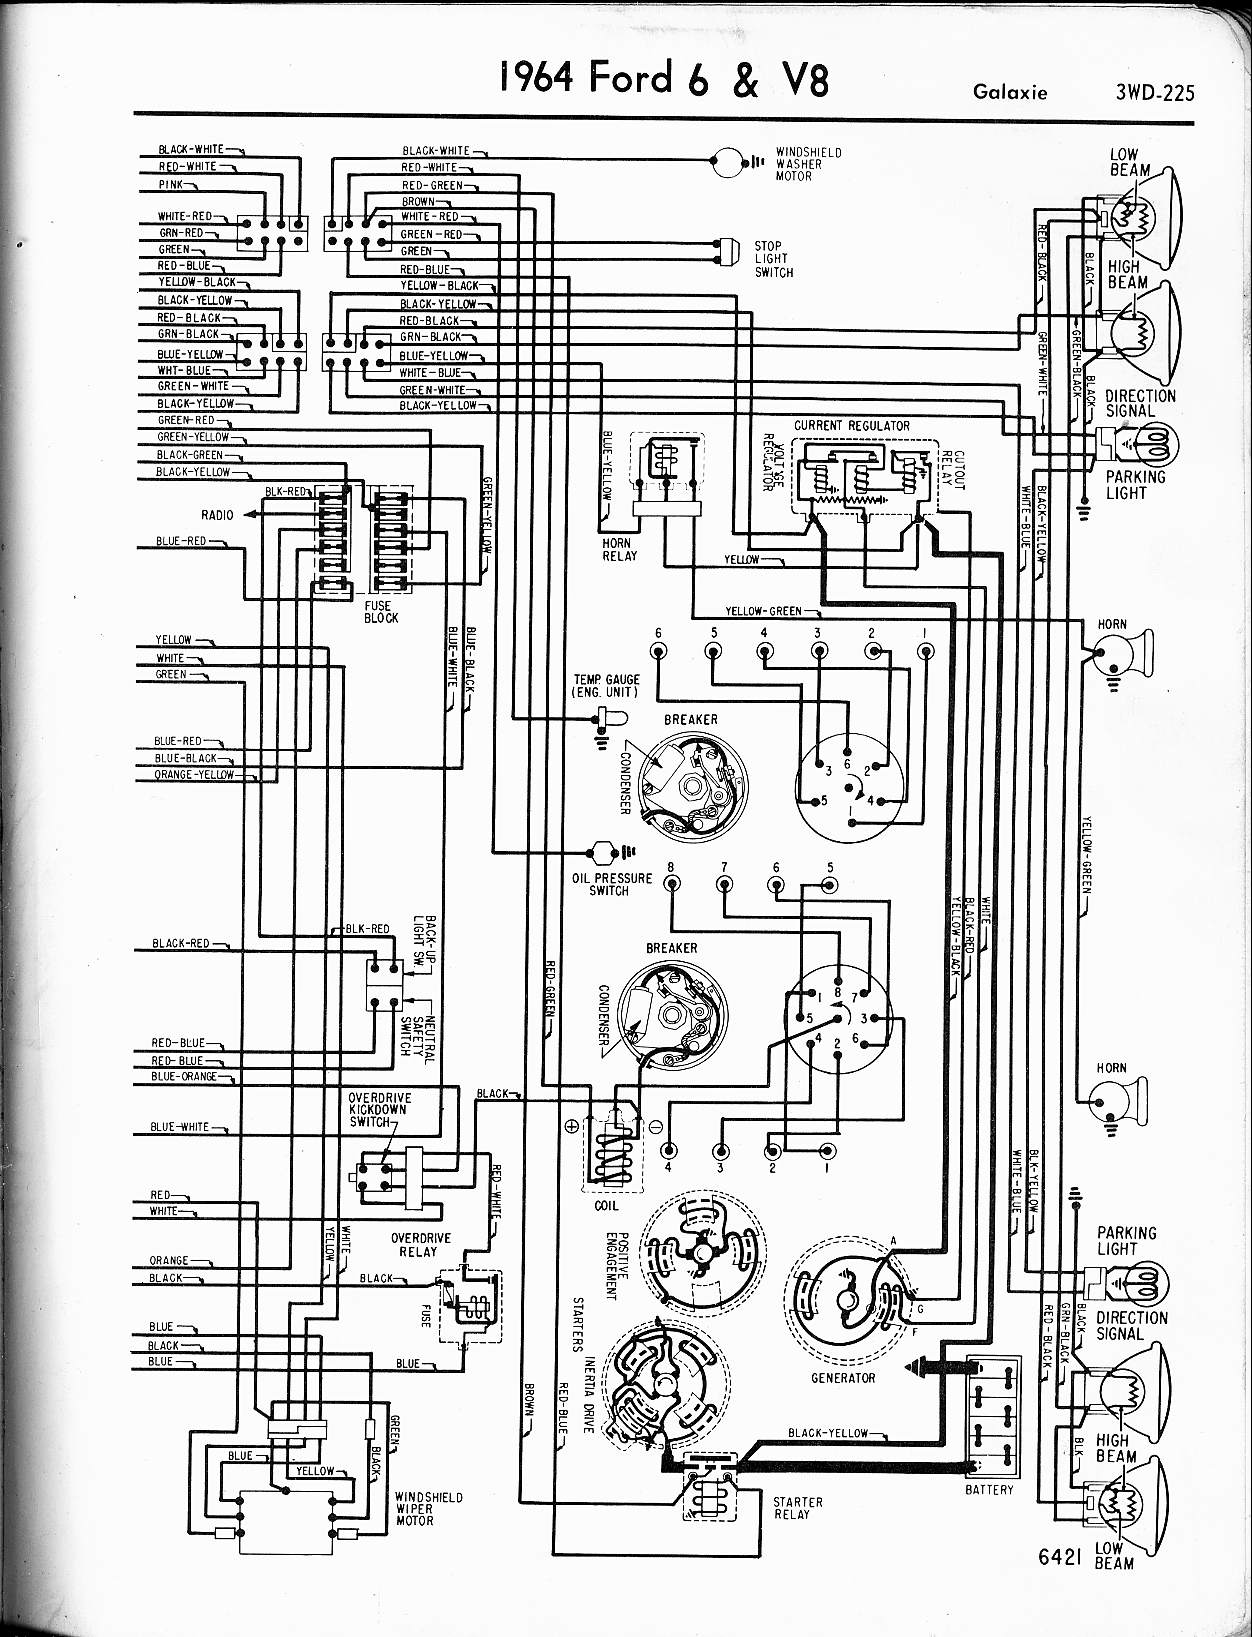 57-65 Ford Wiring Diagrams on jeep liberty wiring-diagram, jeep cherokee tail light wiring diagram, jeep xj wiring-diagram, jeep cj7 belt diagram, isuzu trooper wiring-diagram, jeep cj3b wiring-diagram, sw gauges wiring-diagram, pontiac bonneville wiring-diagram, jeep to chevy wiring harness, 1973 mgb wiring-diagram, 1979 jeep cj7 wiring-diagram, 79 jeep cj7 wiring-diagram, jeep wagoneer wiring-diagram, 2004 chrysler sebring wiring-diagram, jeep cherokee vacuum line diagrams, 1977 jeep cj7 wiring-diagram, jeep jk wiring-diagram, jeep tj wiring-diagram, 1985 jeep cj7 wiring-diagram, jeep patriot wiring-diagram,